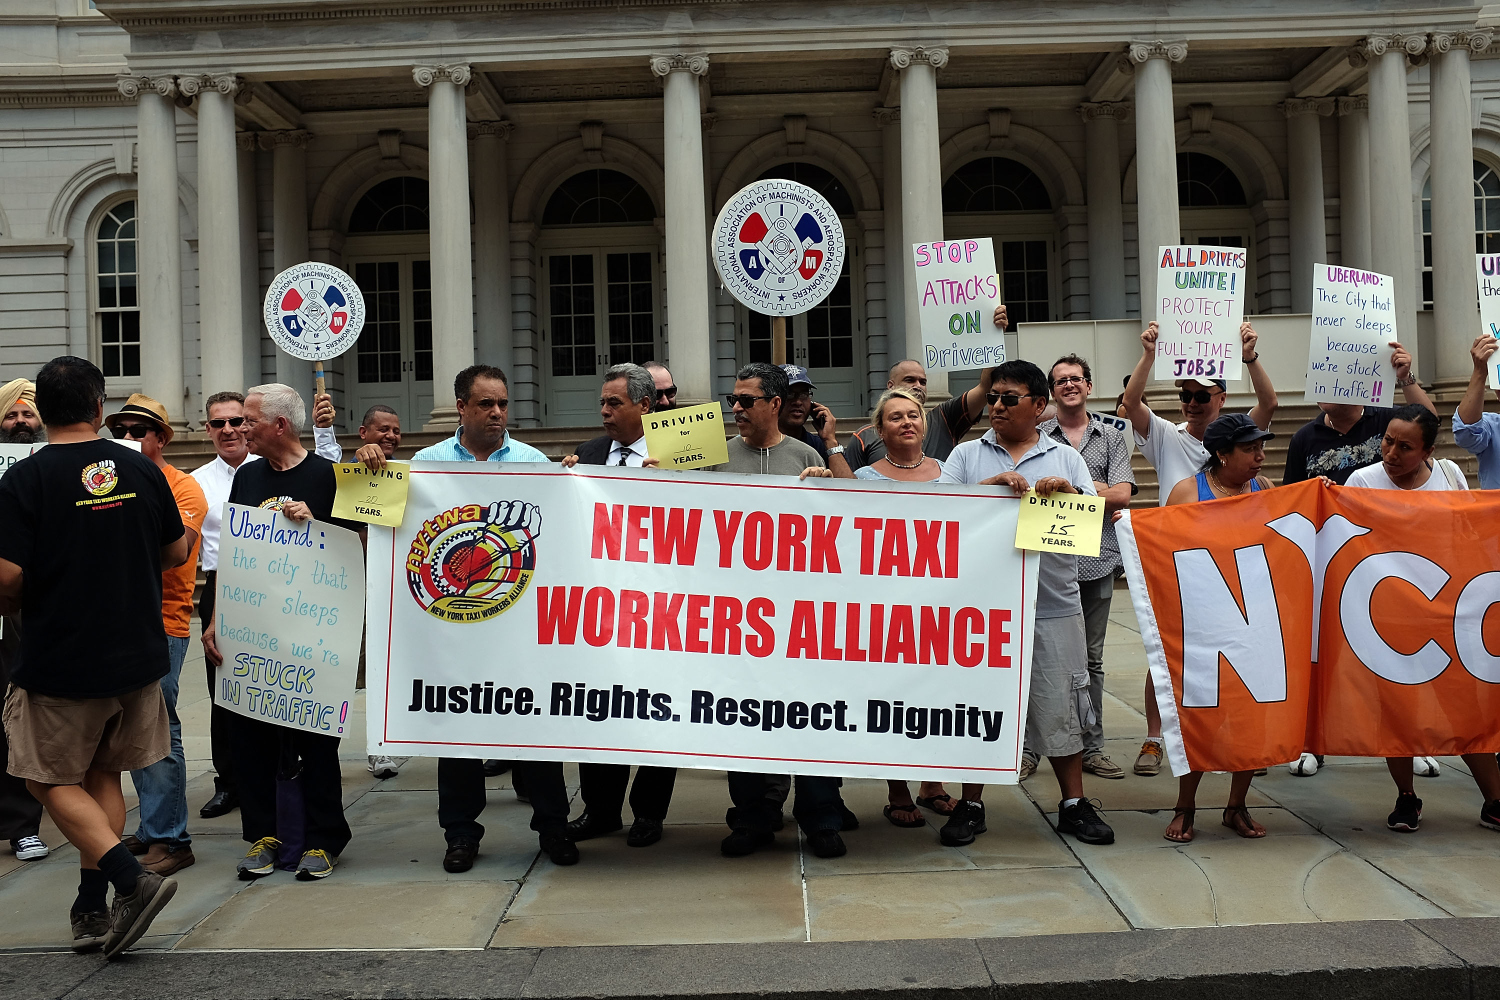 A City Hall rally to support a limit to the number of Uber drivers on the streets of New York City, on July 20, 2015 . (Photo by Spencer Platt/Getty Images)